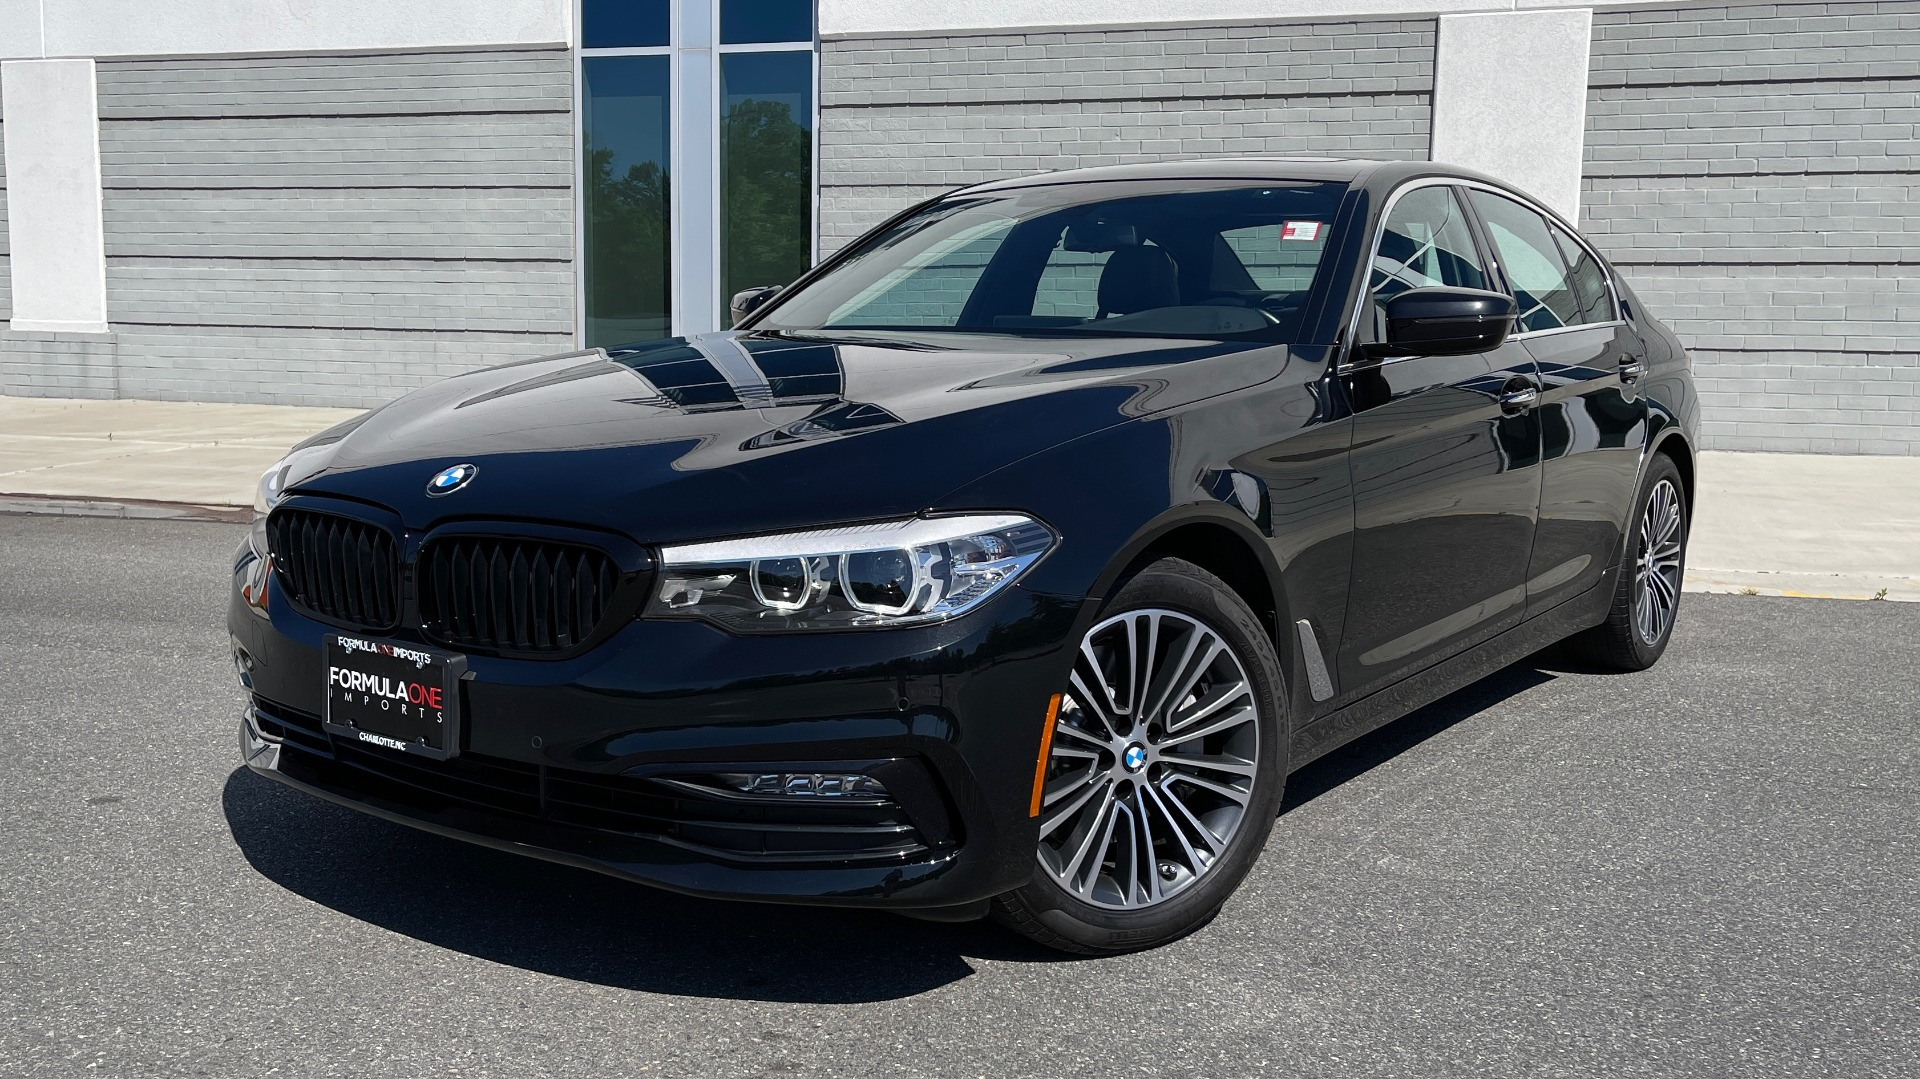 Used 2018 BMW 5 SERIES 540I XDRIVE PREMIUM / NAV / PARK ASST / WIRELESS CHARGING H/K SND for sale $38,395 at Formula Imports in Charlotte NC 28227 1